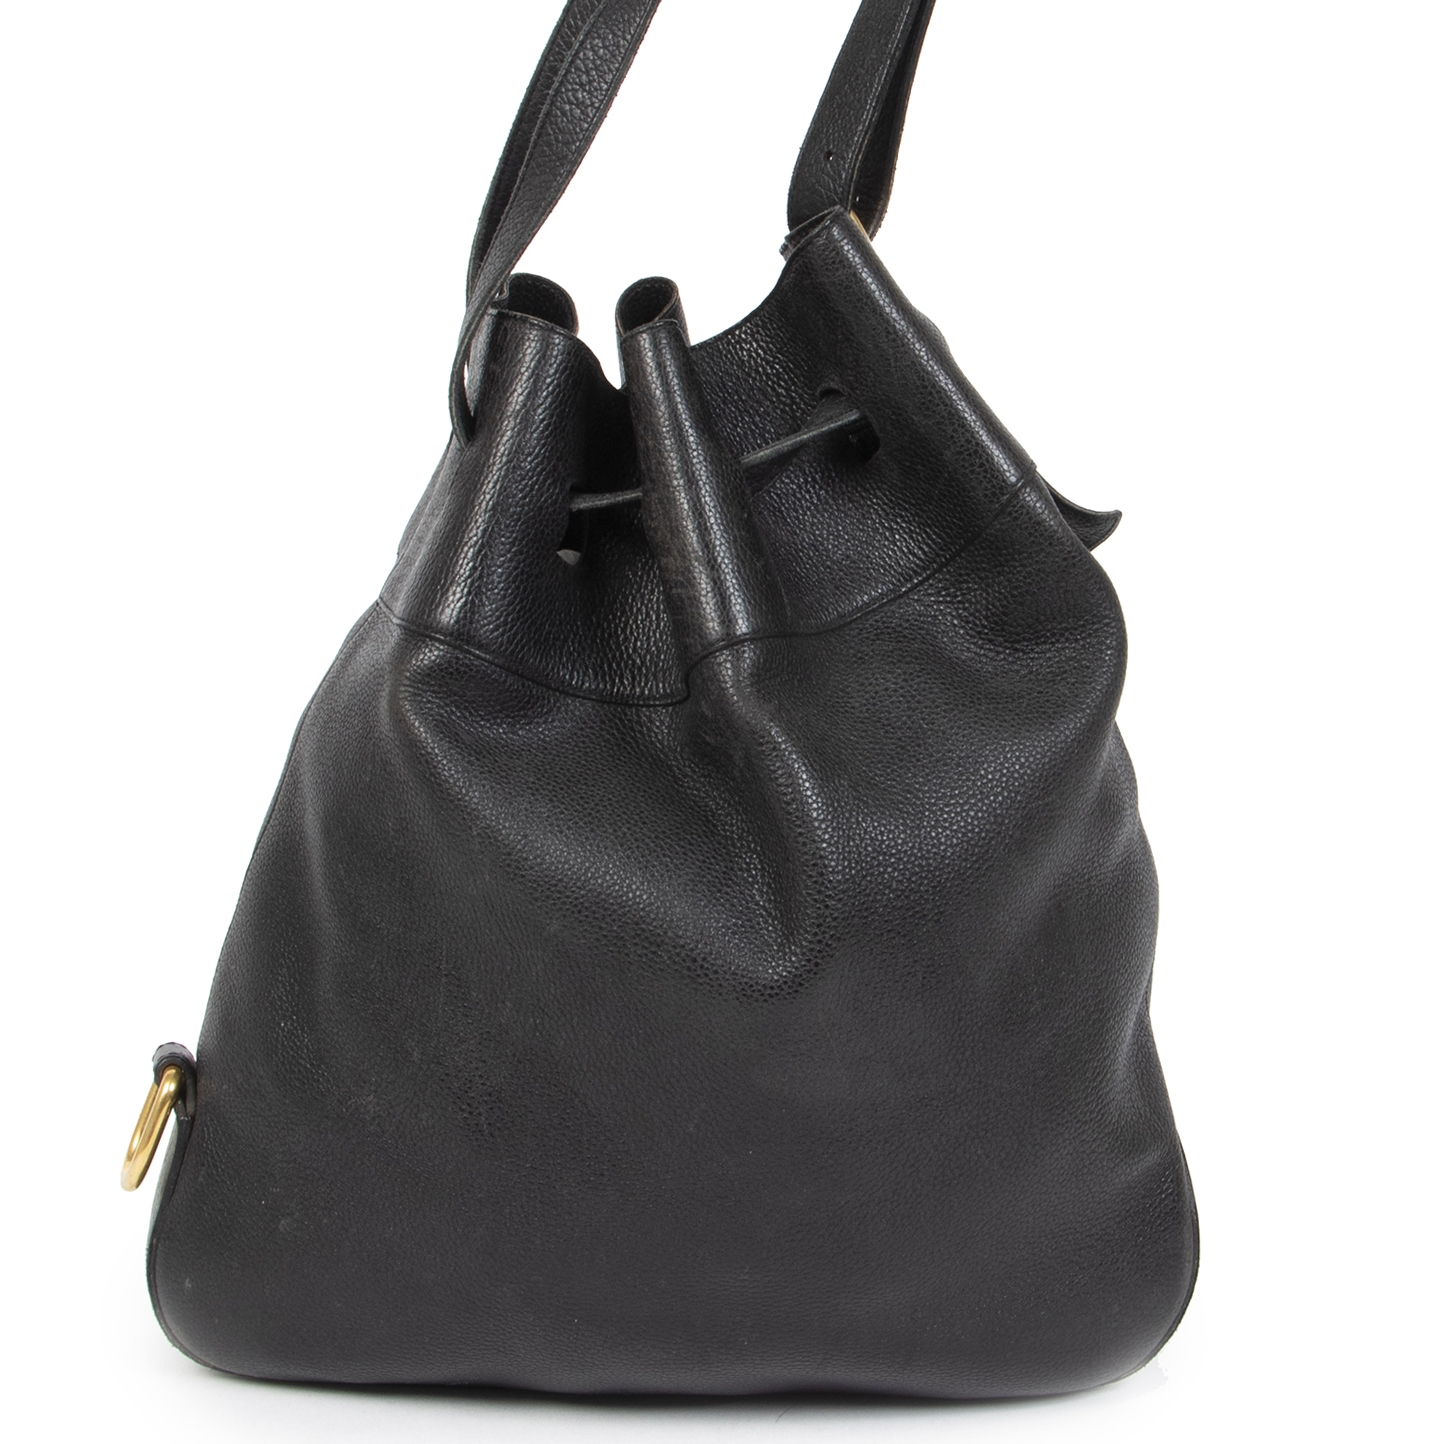 Authentic secondhand Delvaux Black Leather Bucket Bag designer bags designer brands fashion luxury vintage webshop safe secure online shopping worldwide shipping